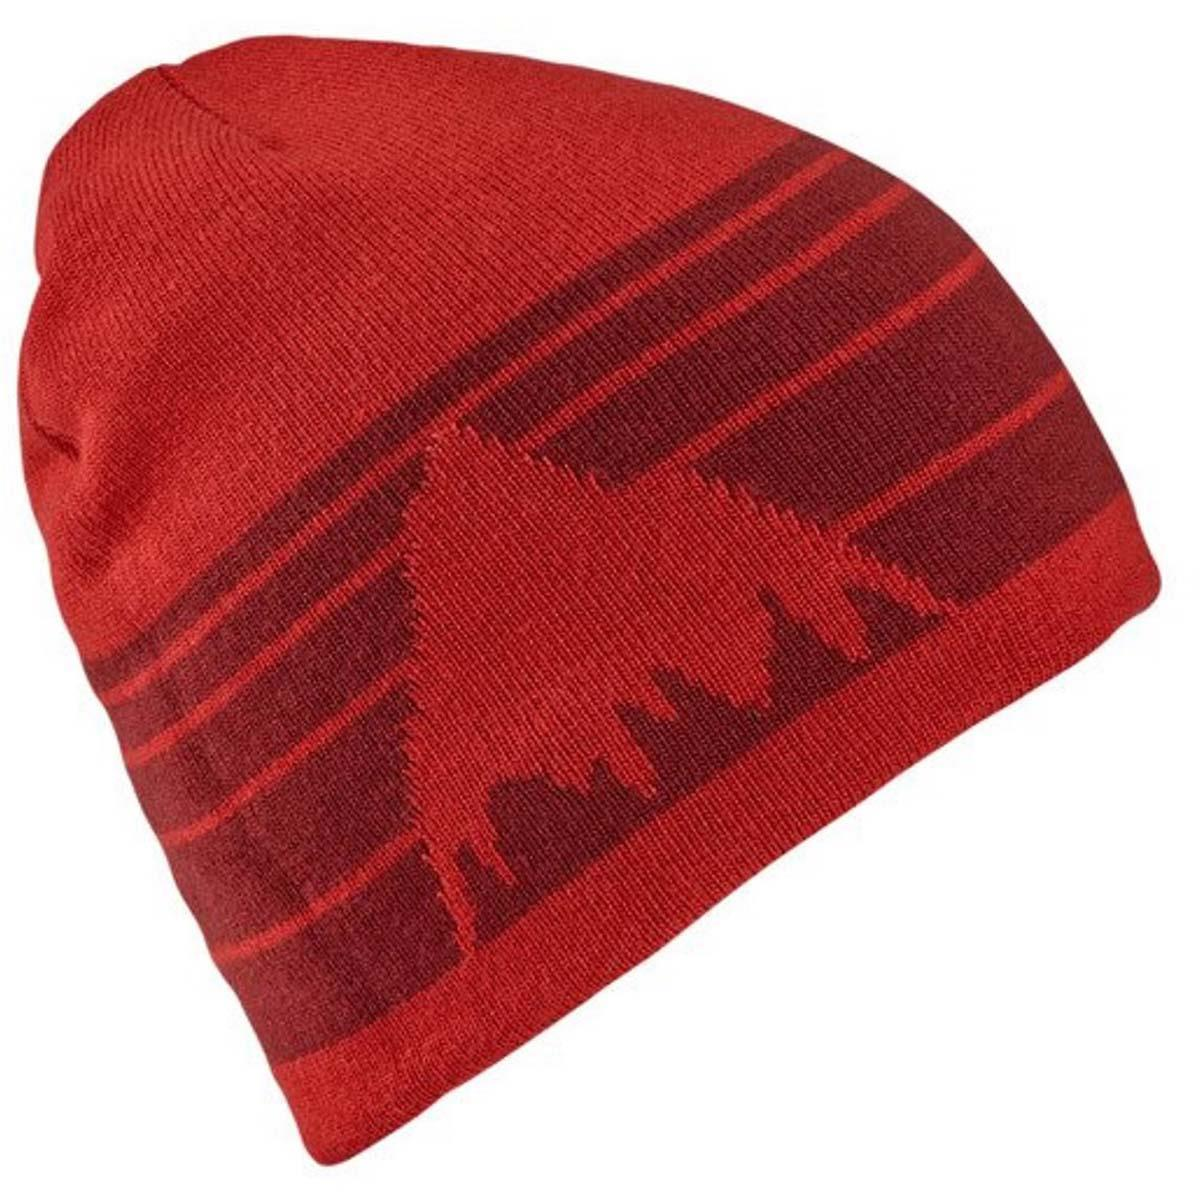 b70205f5b67 Burton Billboard Beanie Mens. Loading zoom